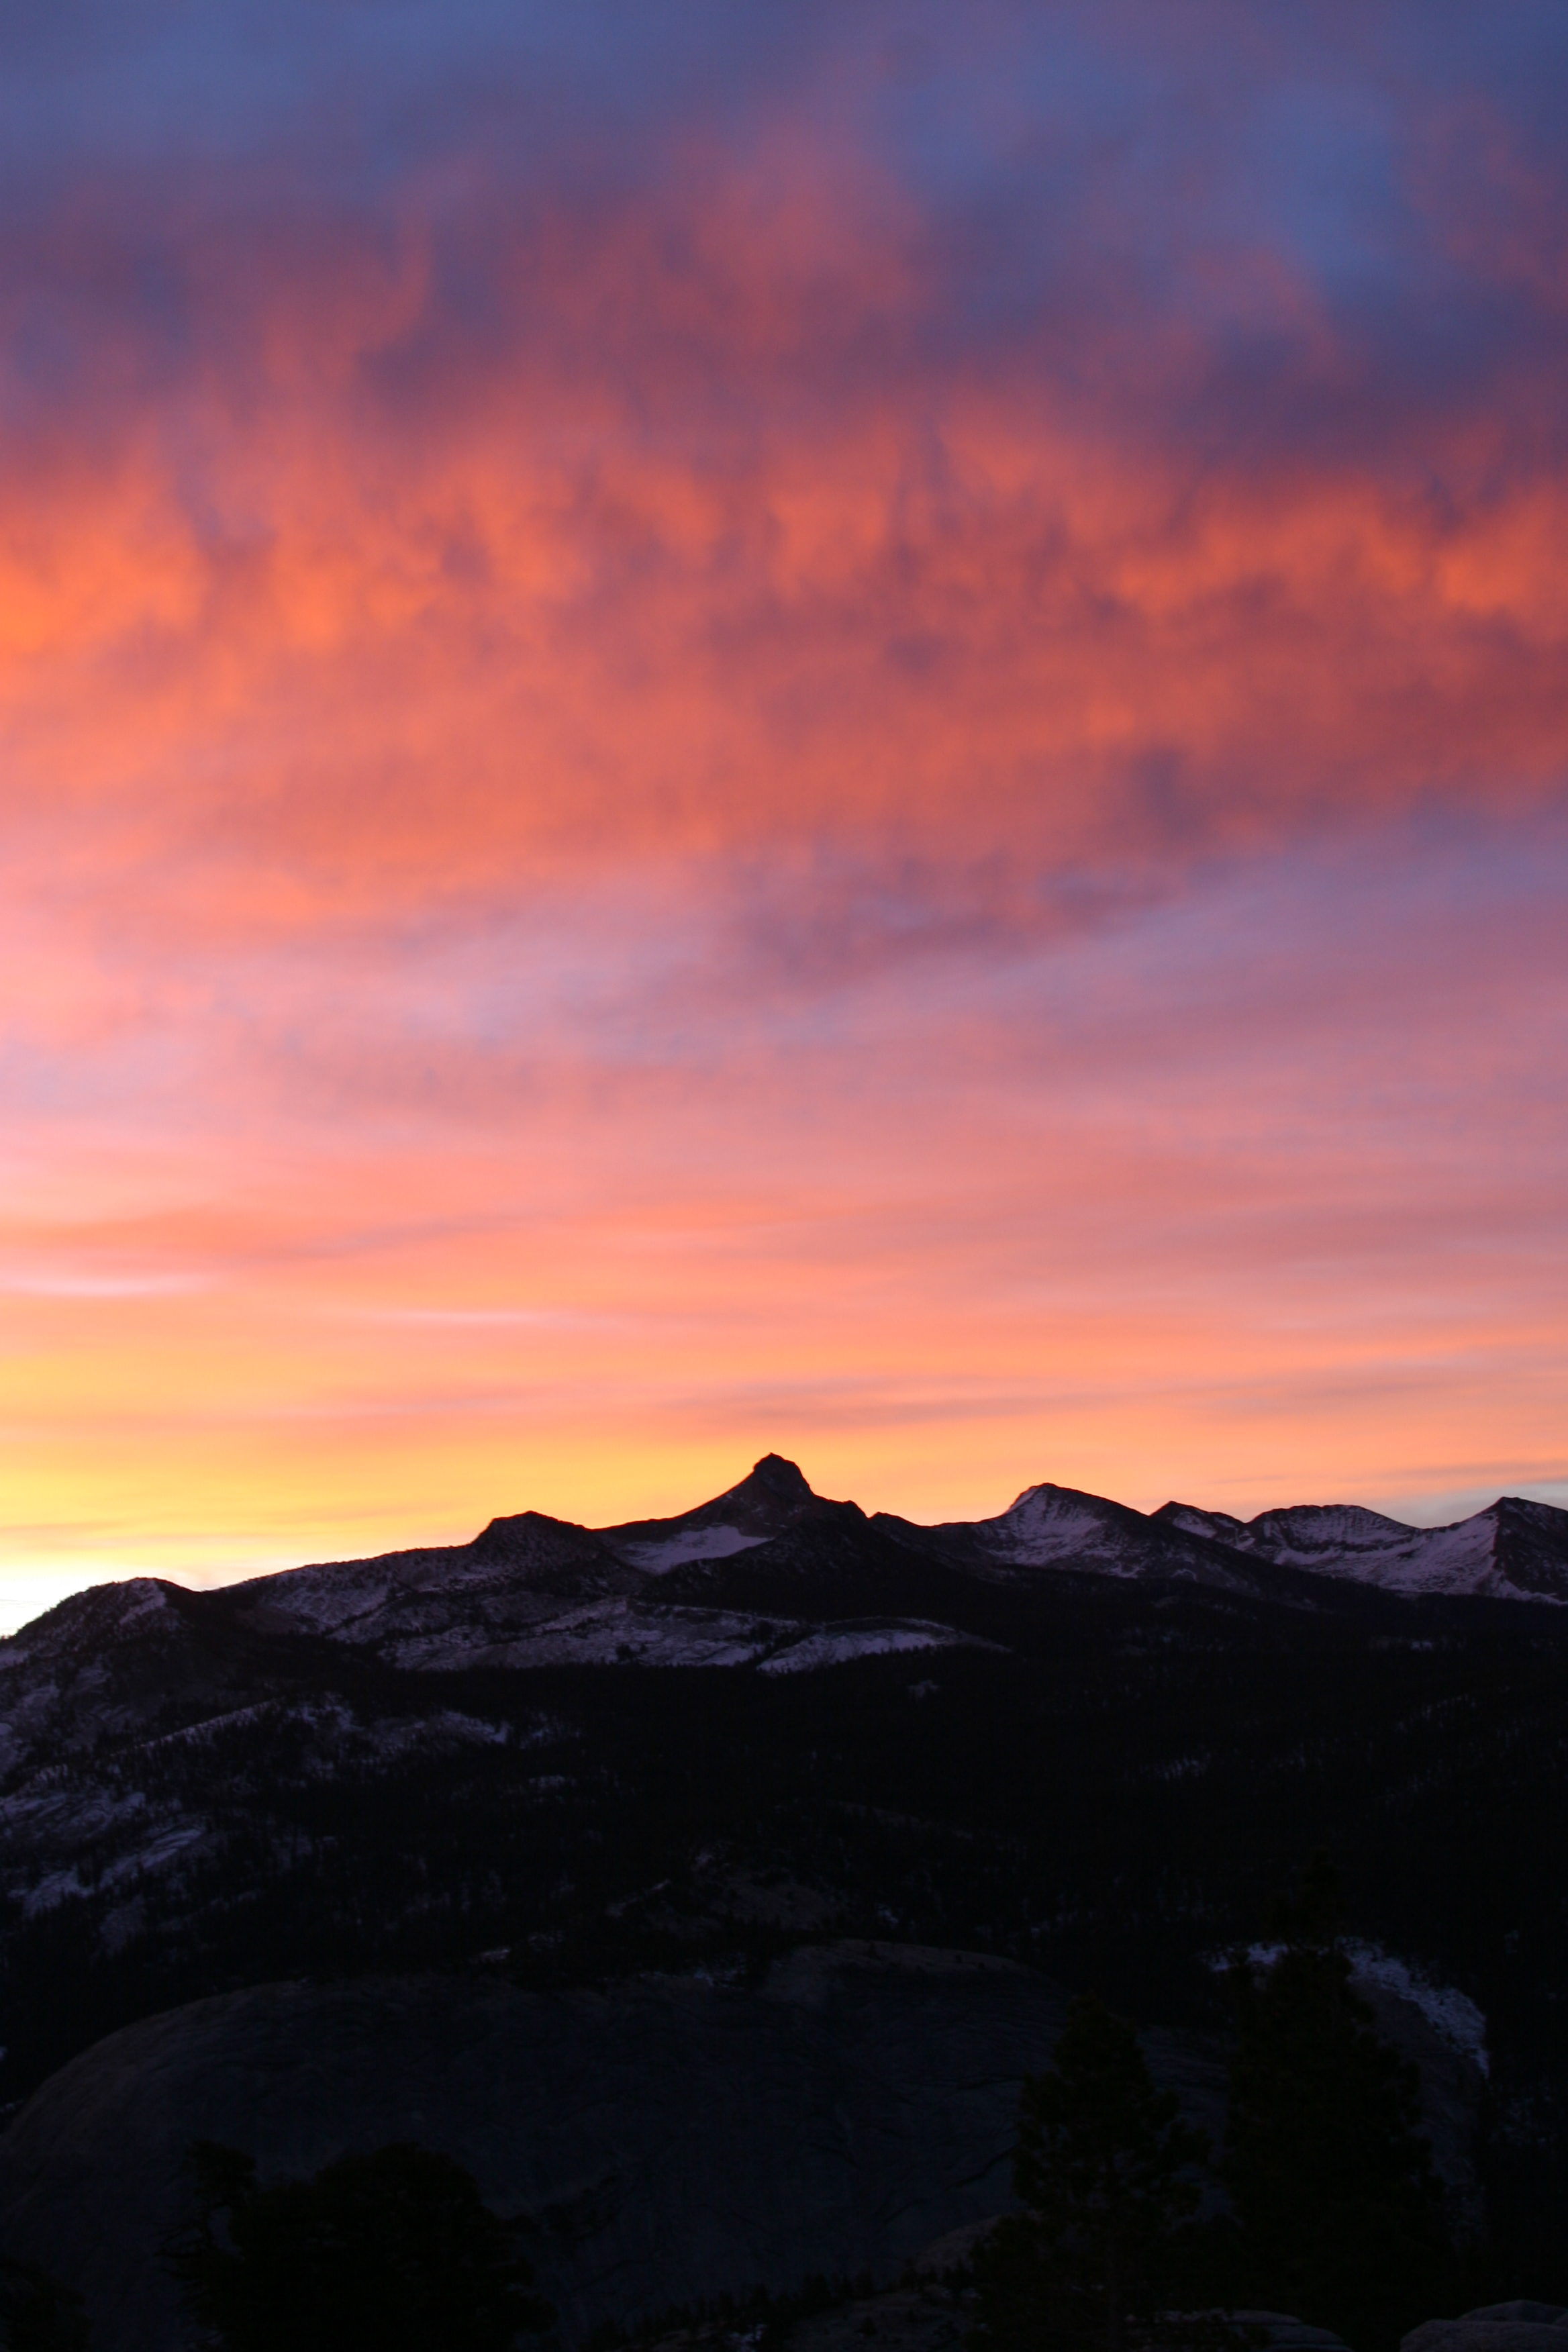 If you backpack, you may be treated to some stellar sunsets near the summit of Clouds Rest